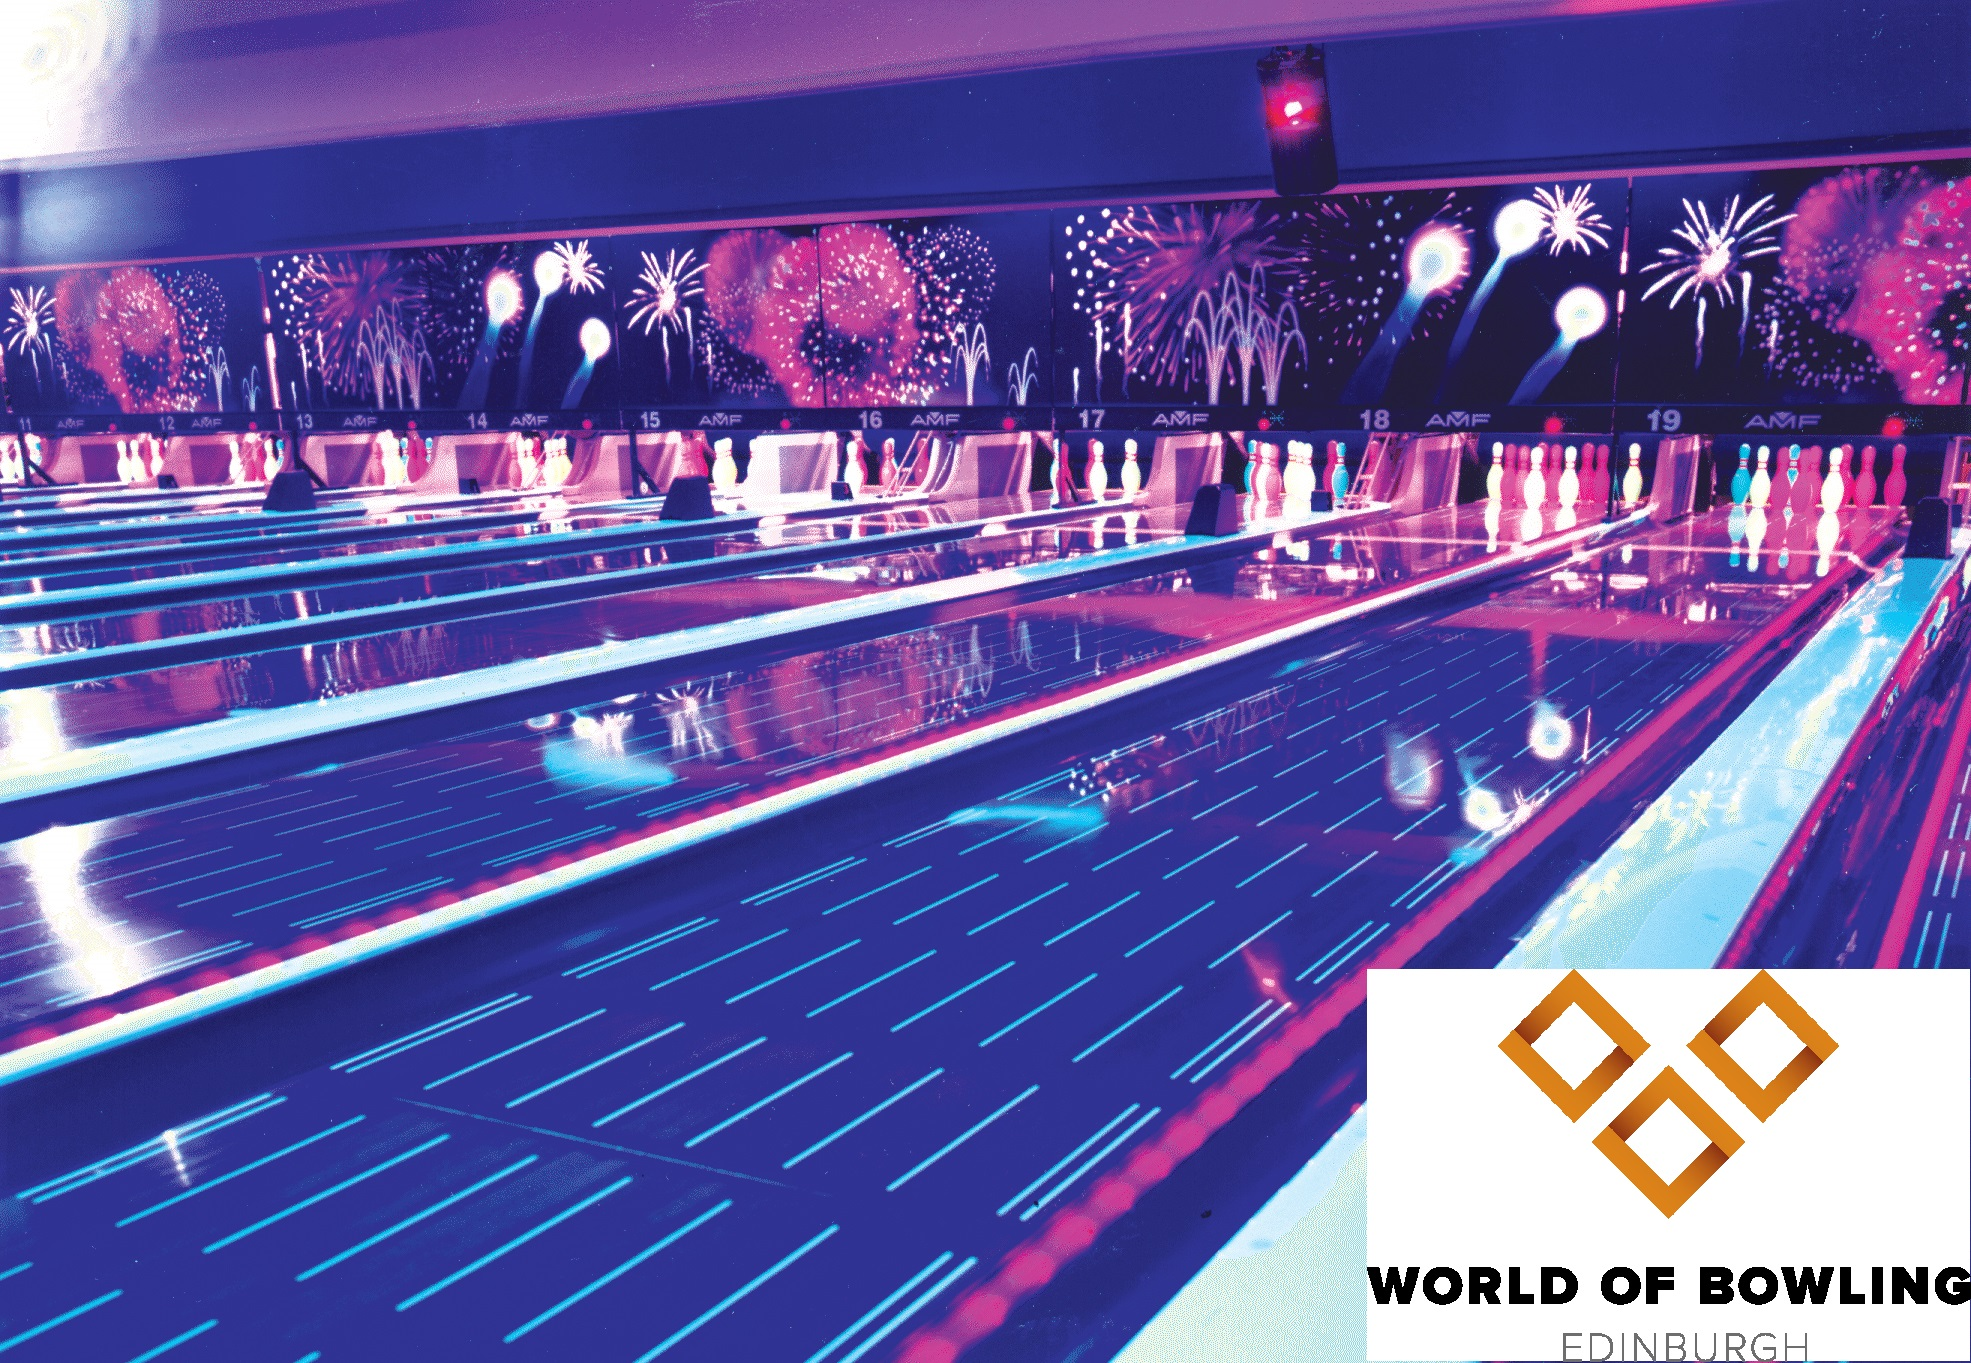 World of Bowling VG image